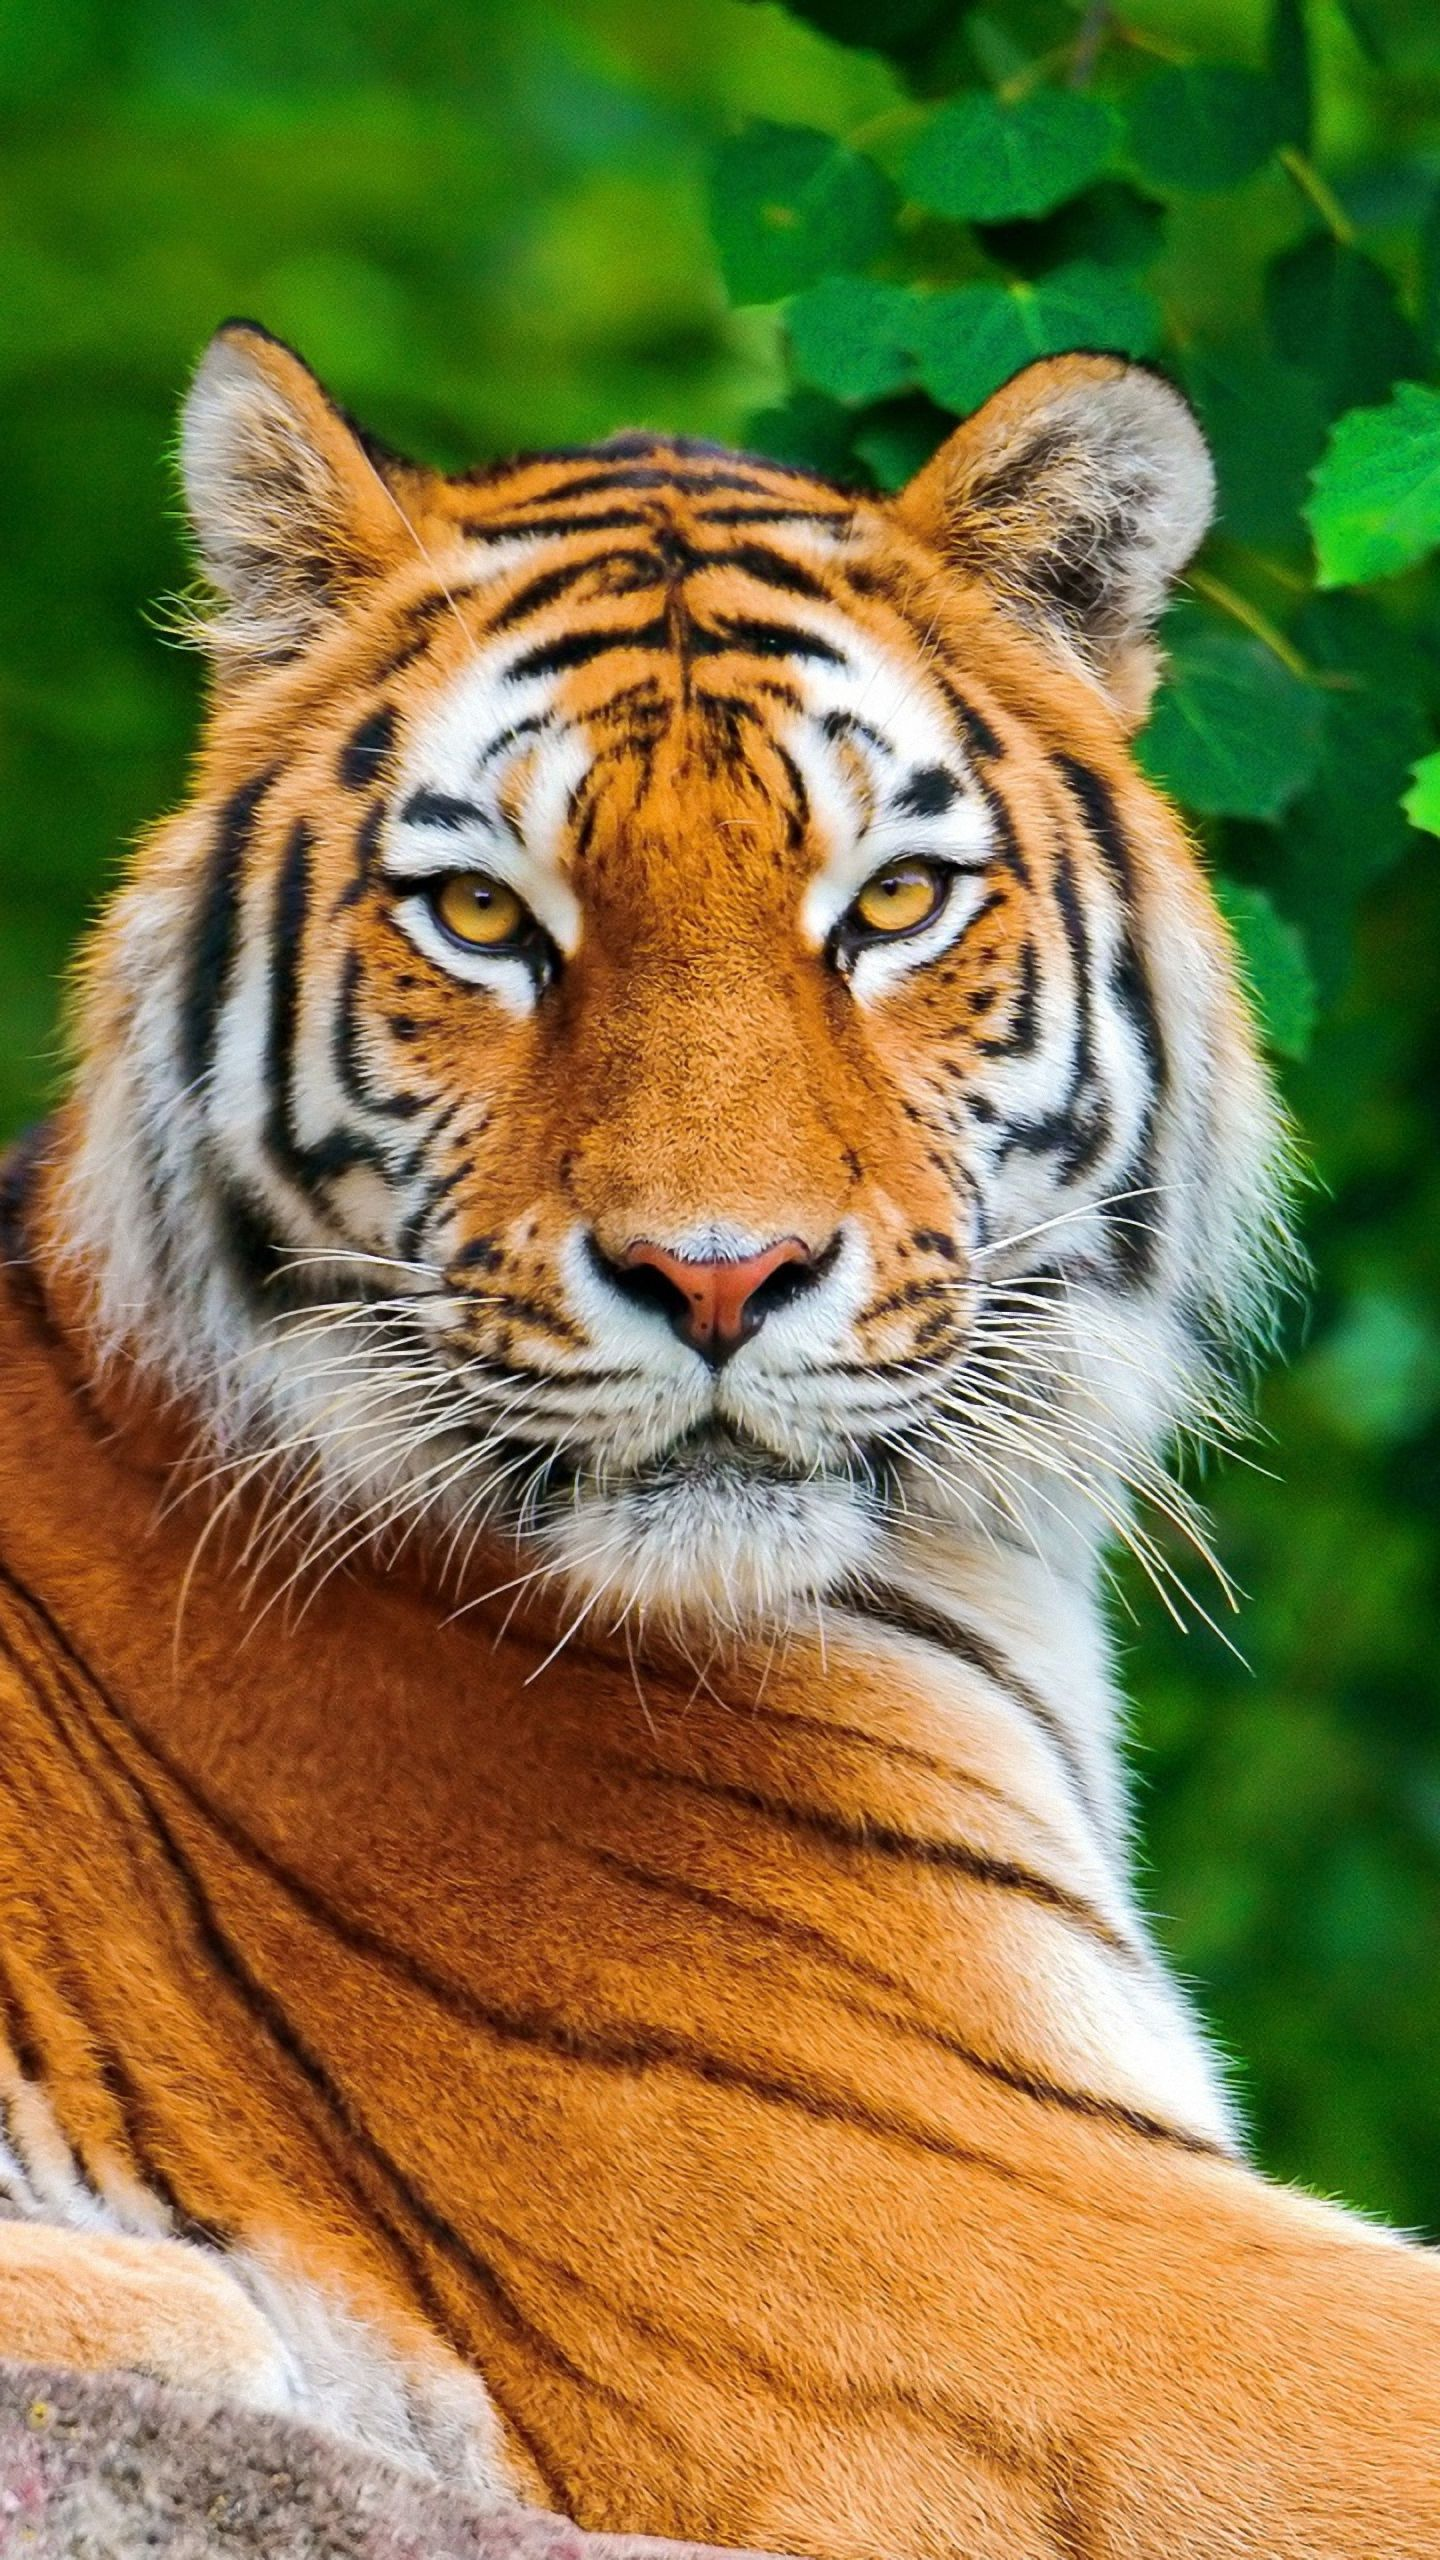 Tiger Mobile Wallpapers Animals Wild Animals Beautiful Tiger Pictures